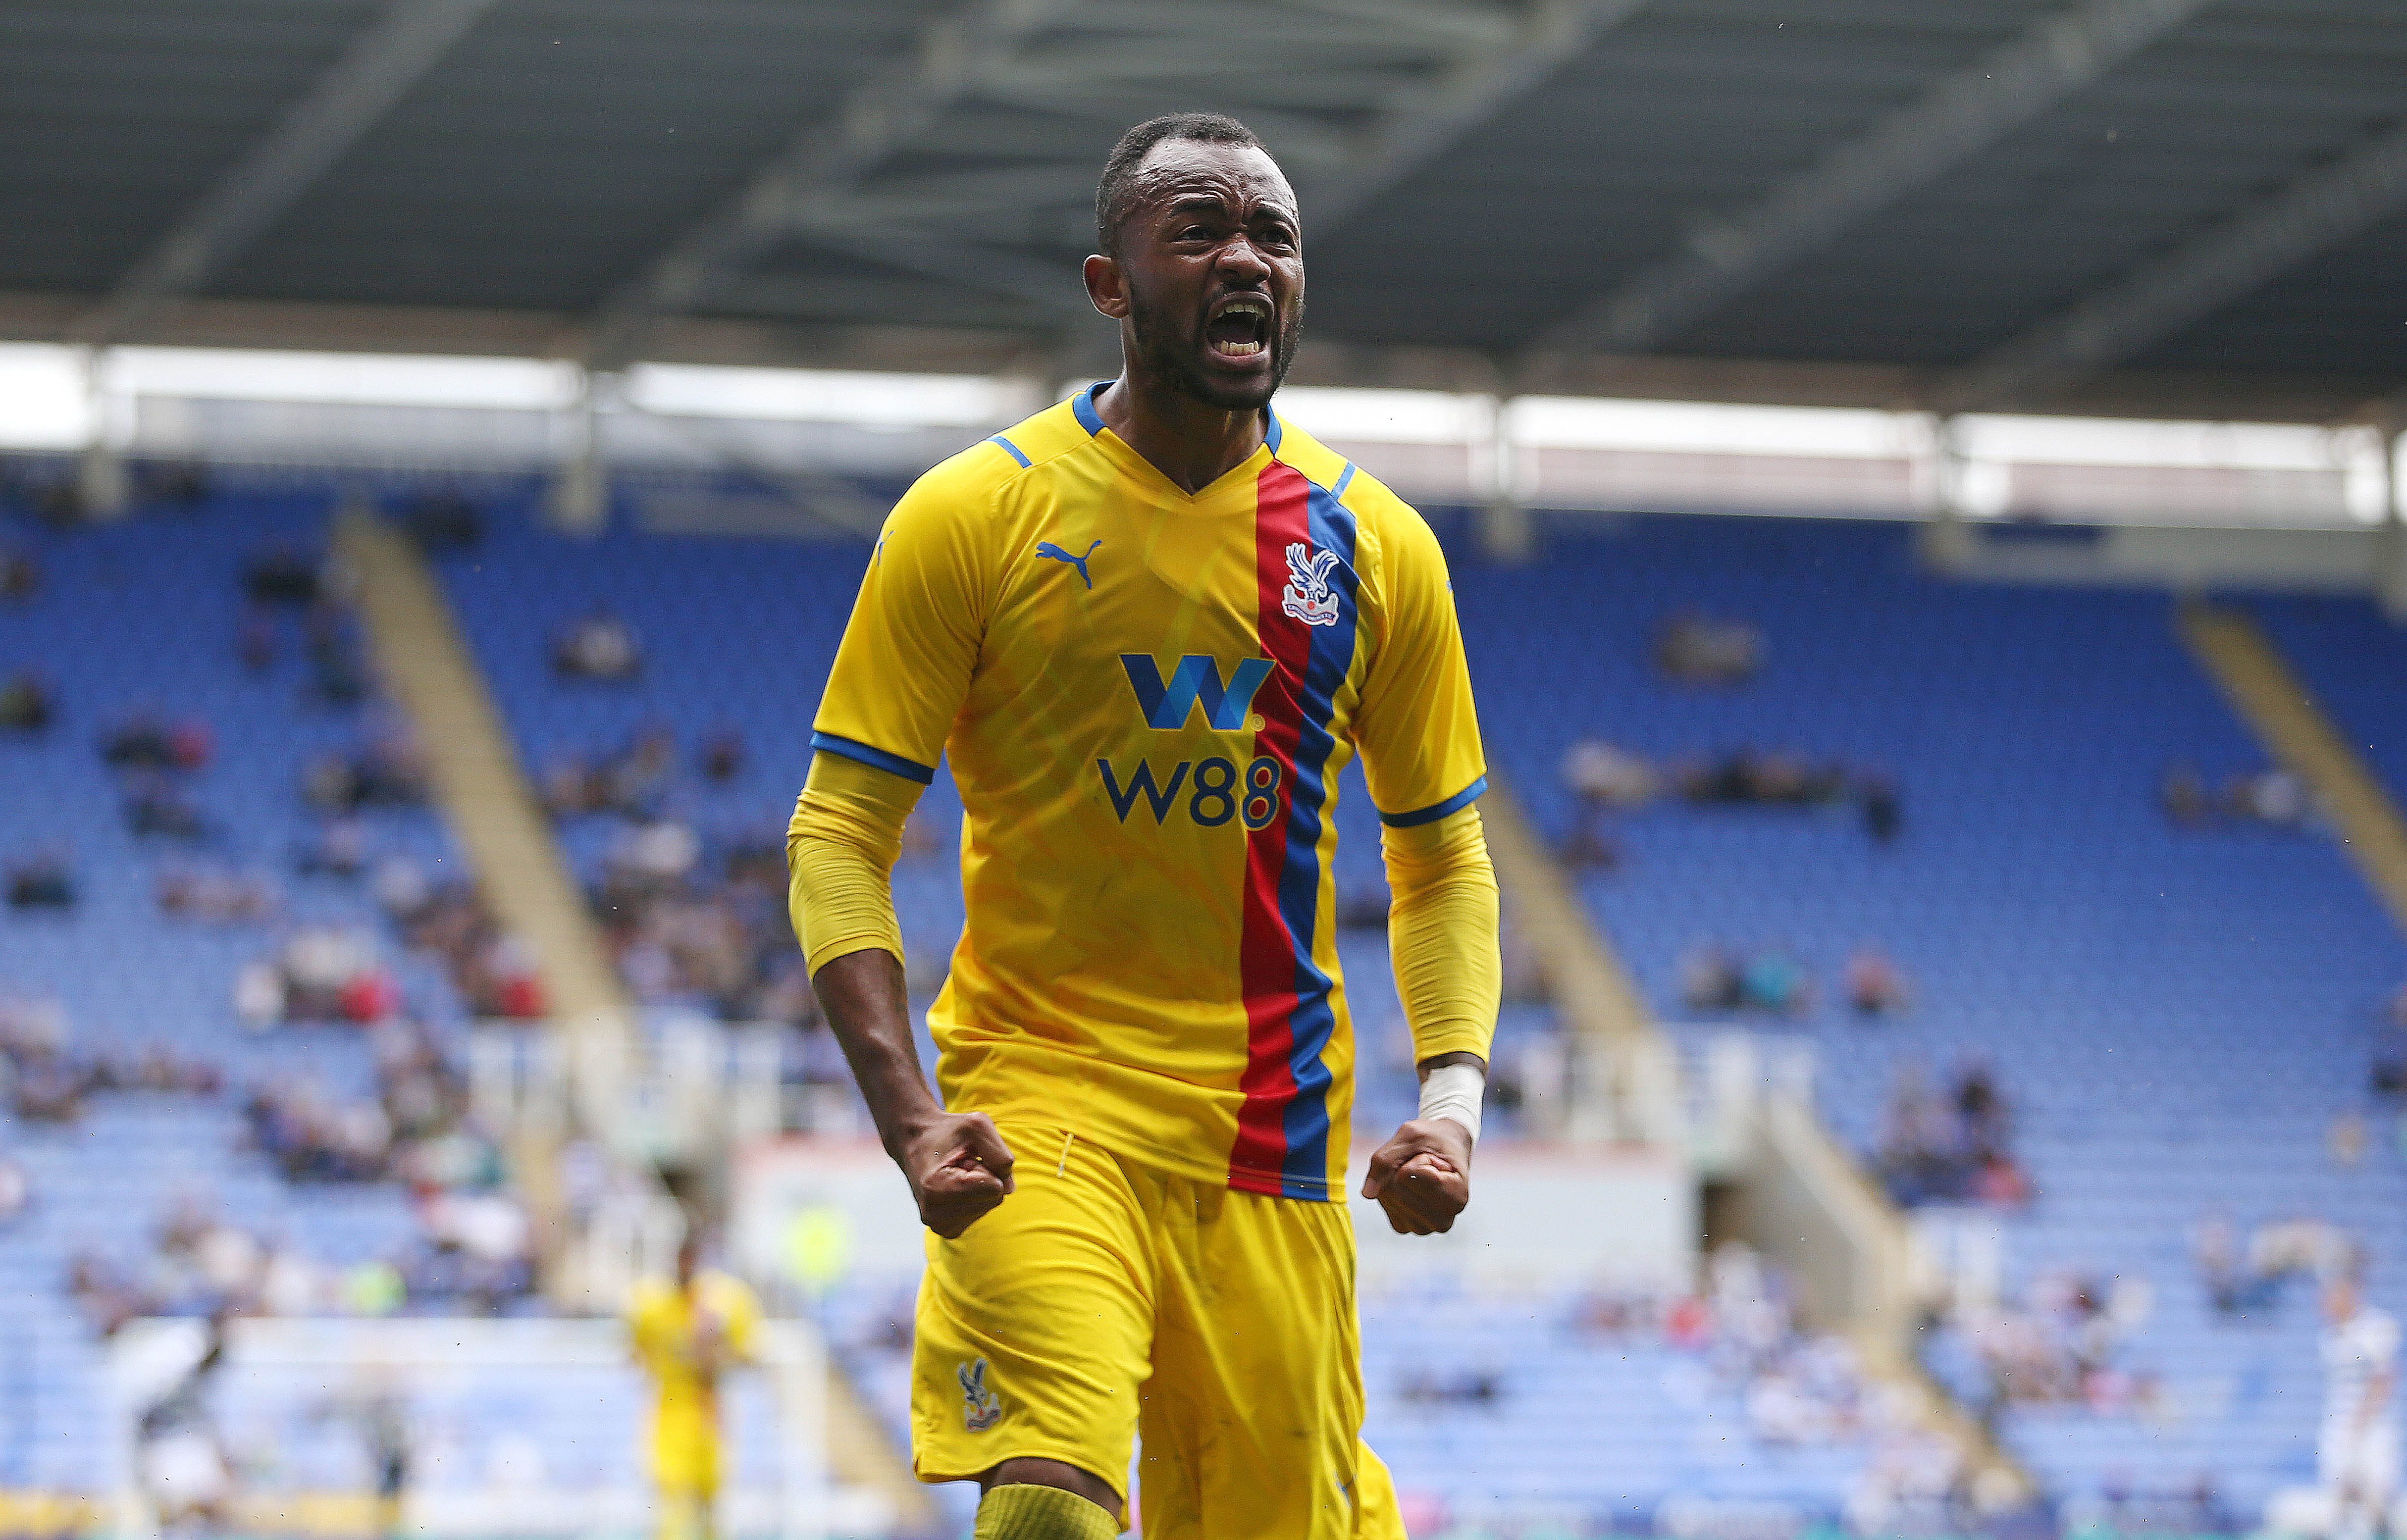 Palace Preview: Eagles look to end 21/22 prep on high against Watford